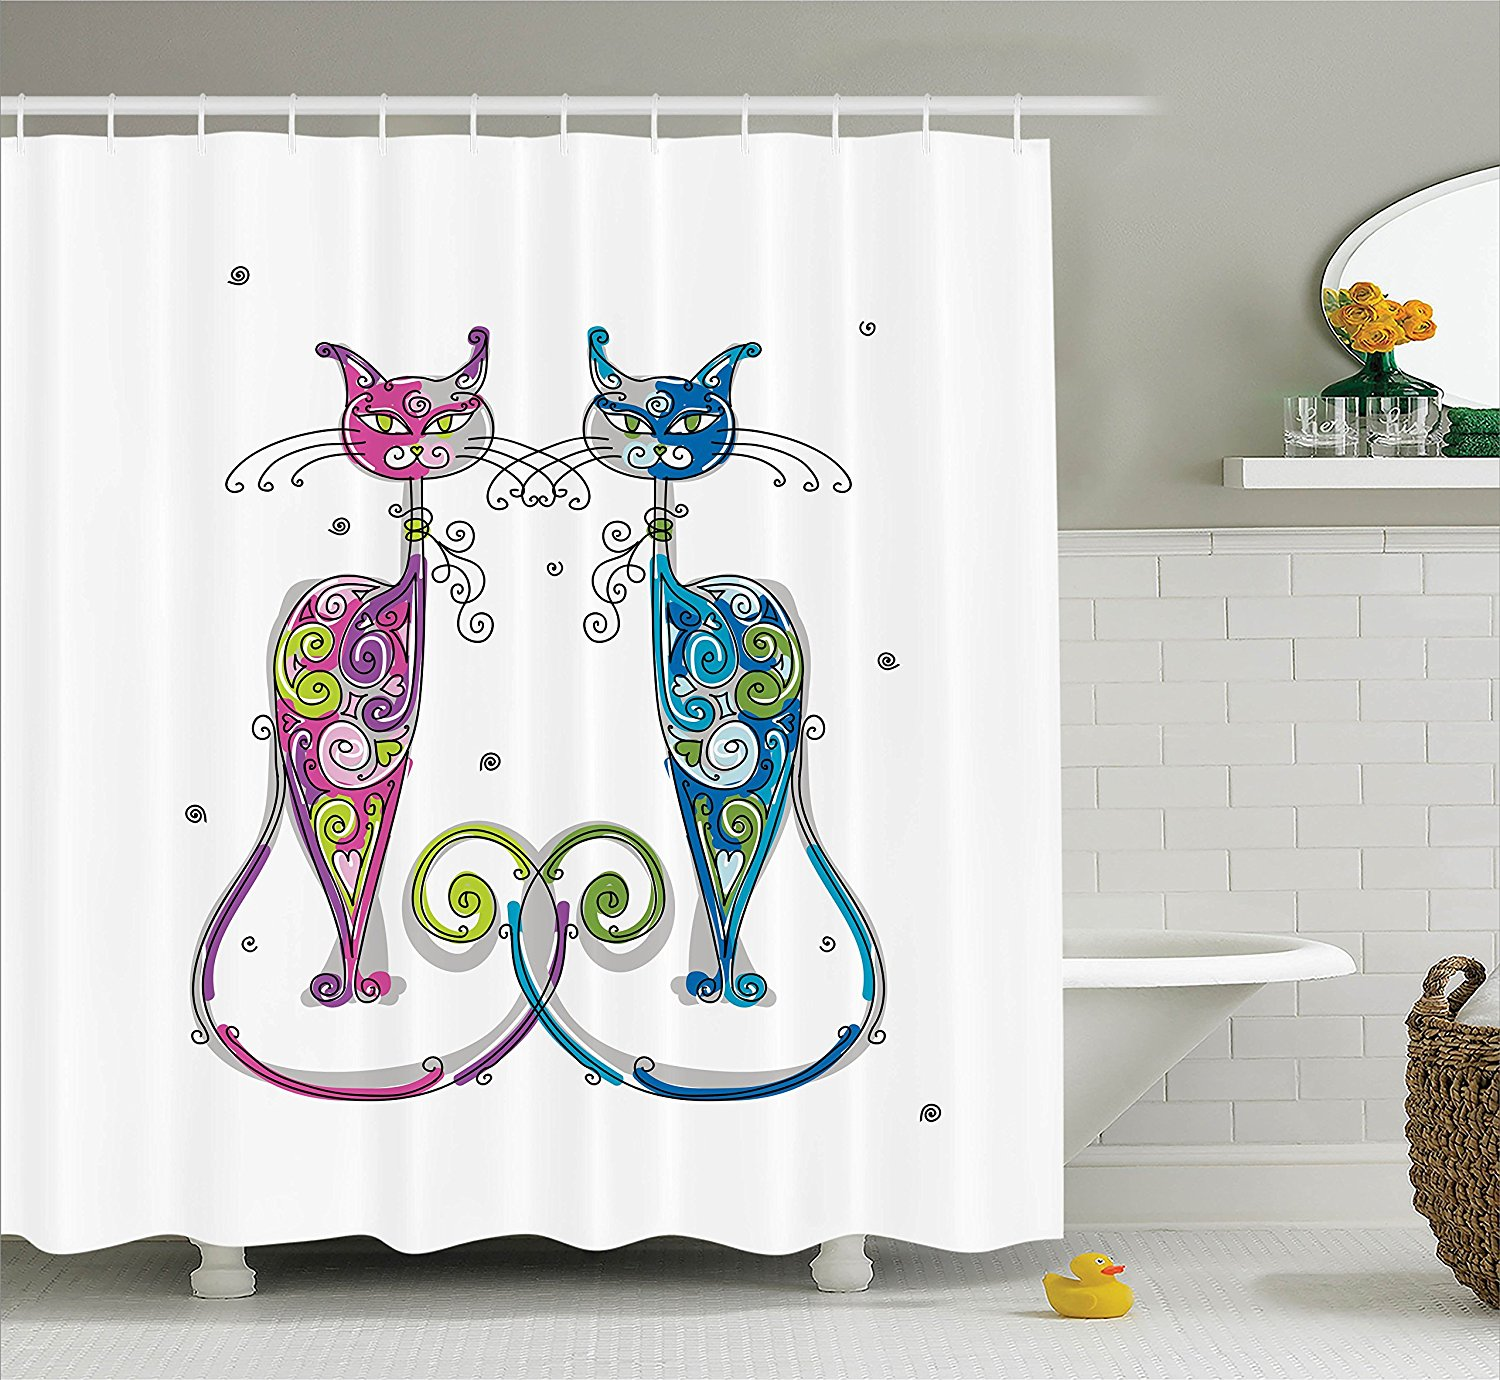 Vibrant cat shower curtain